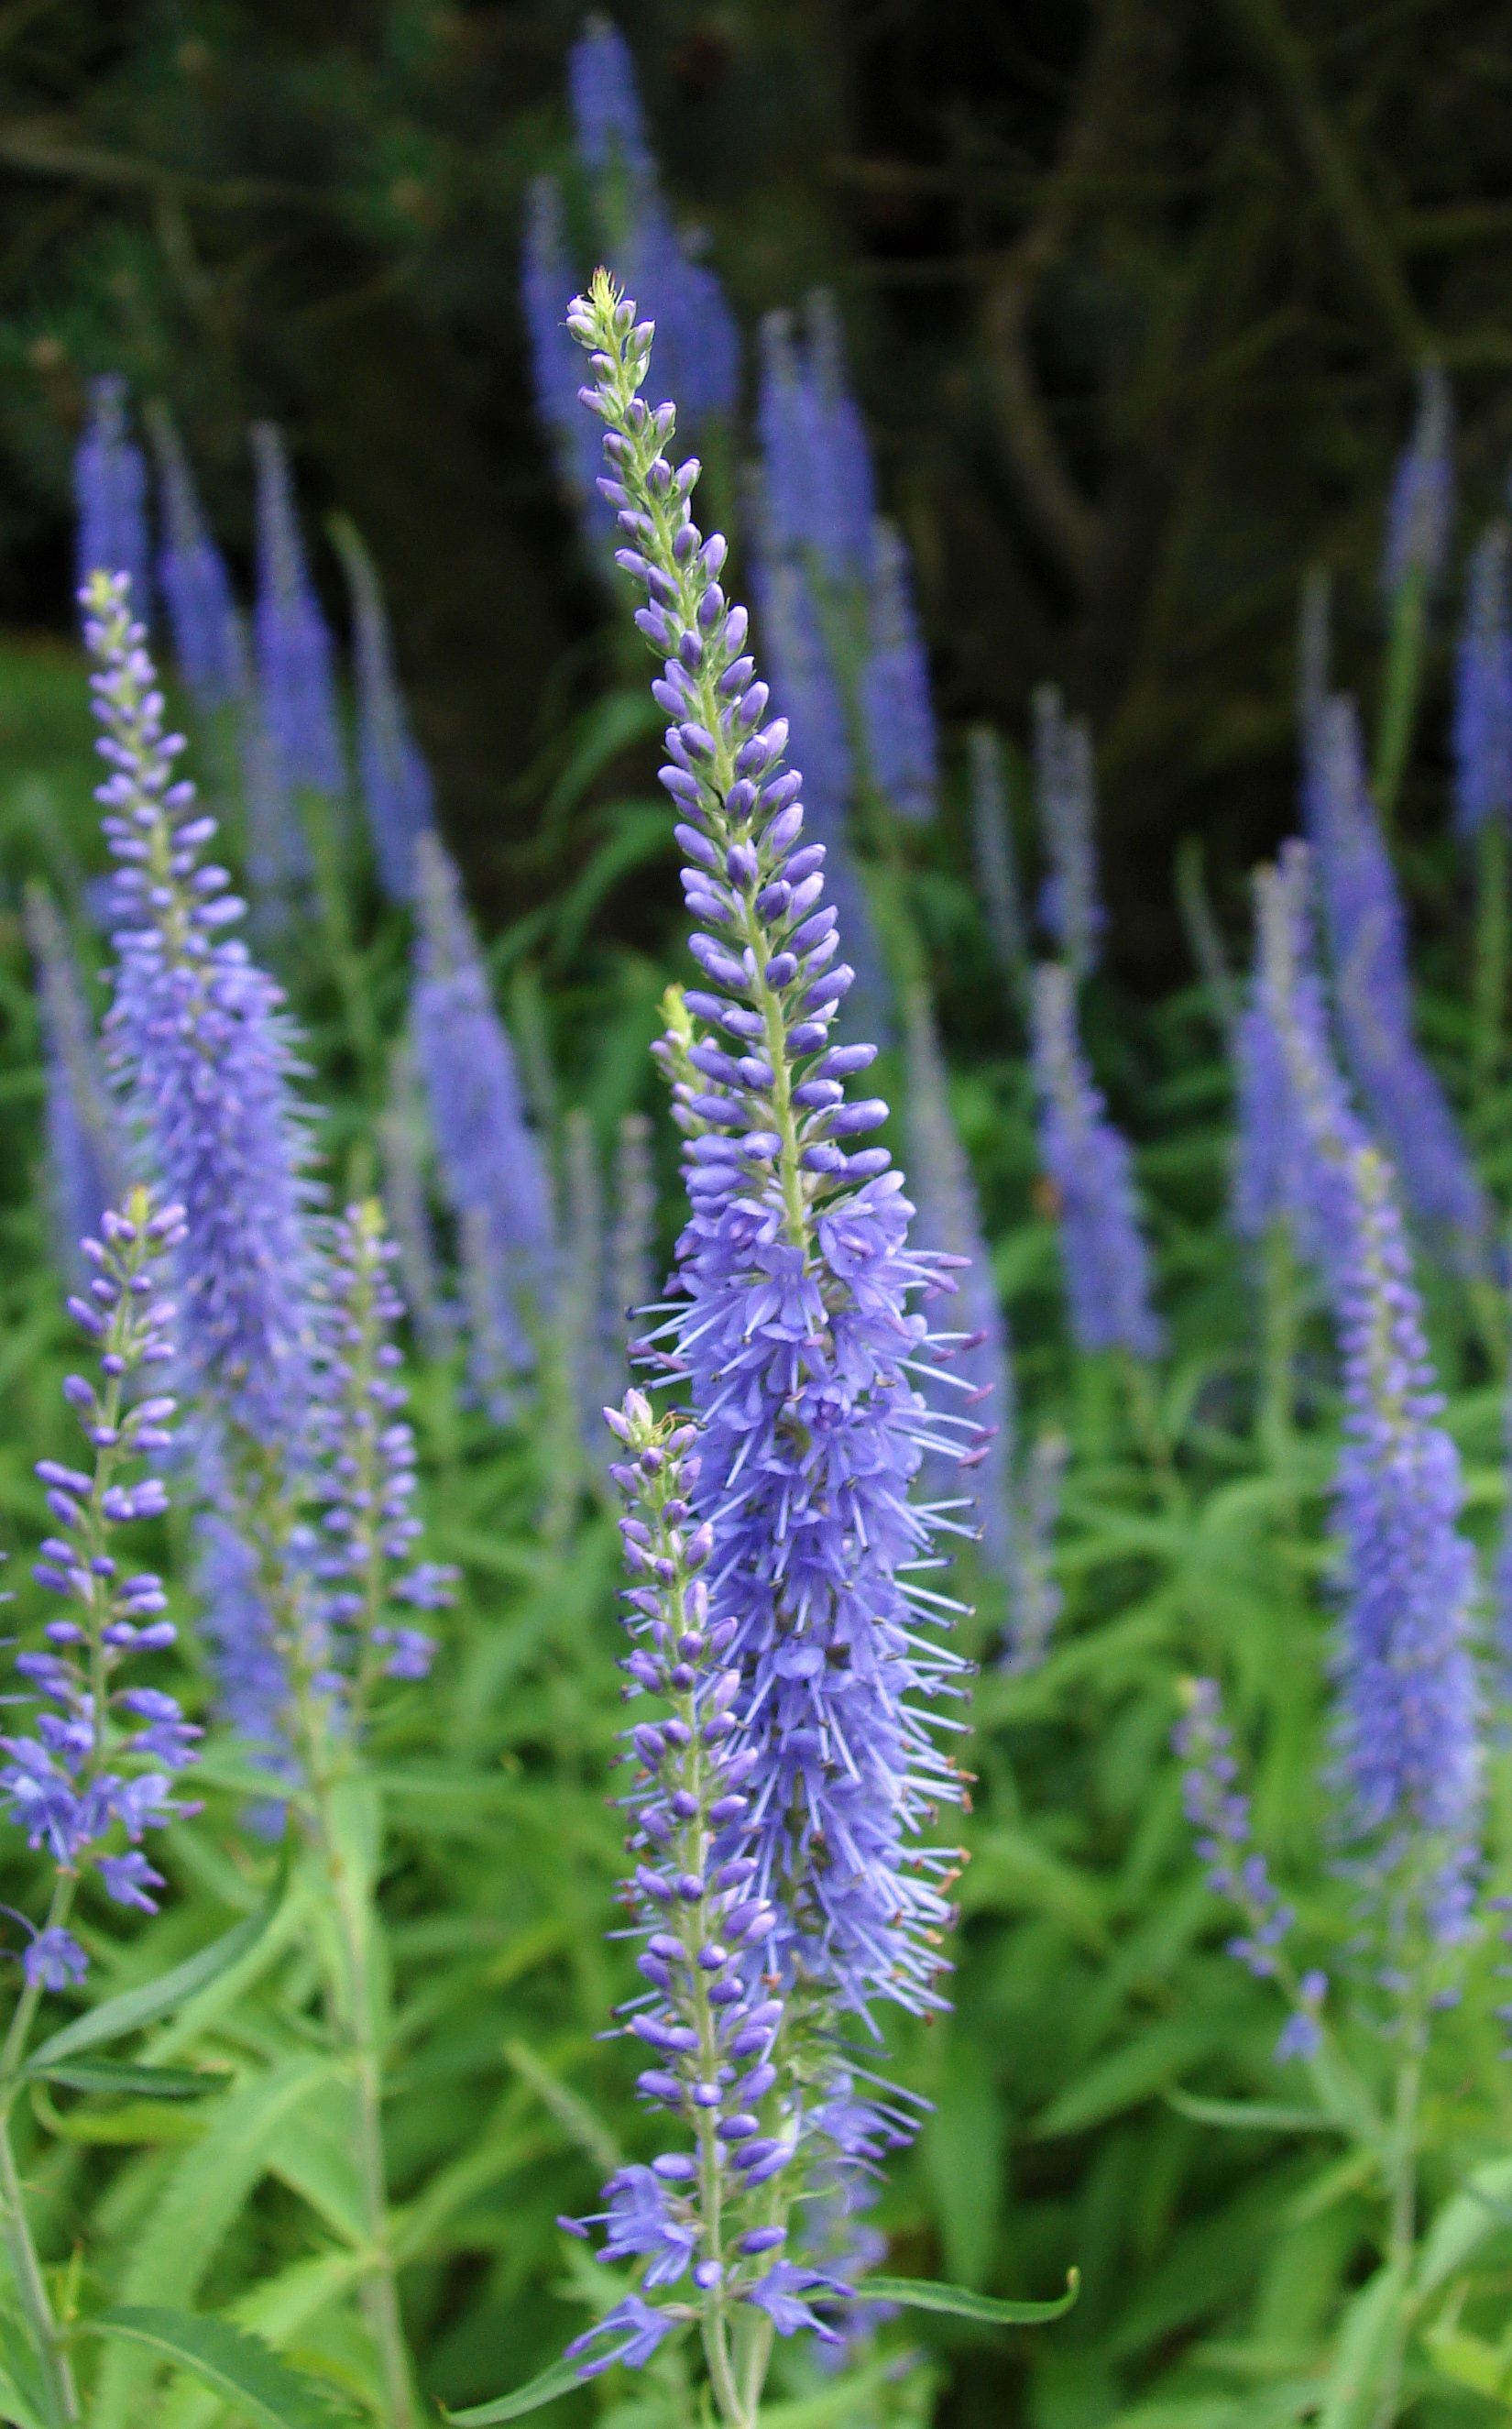 File:Veronica-longifolia.jpg - Wikimedia Commons